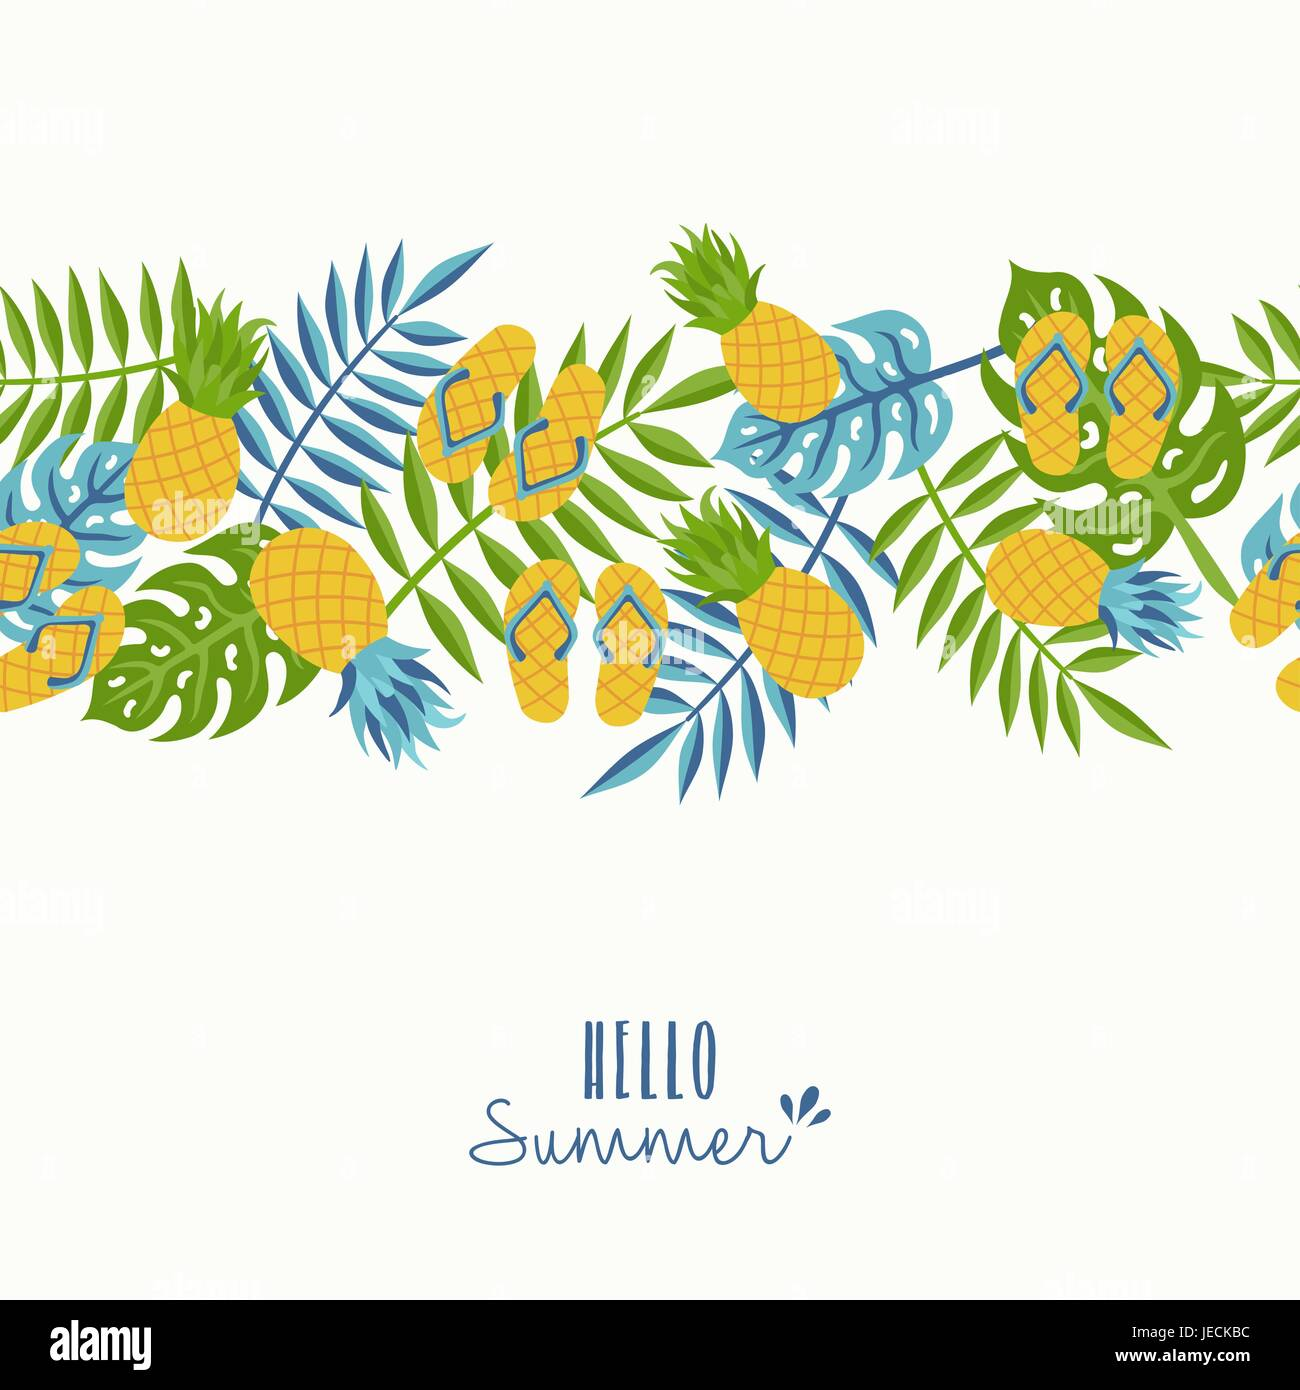 Happy Summer Greeting Card Design With Tropical Seamless Pattern And  Typography Quote. Includes Pineapple, Palm Leaf, Flip Flops. EPS10 Vector